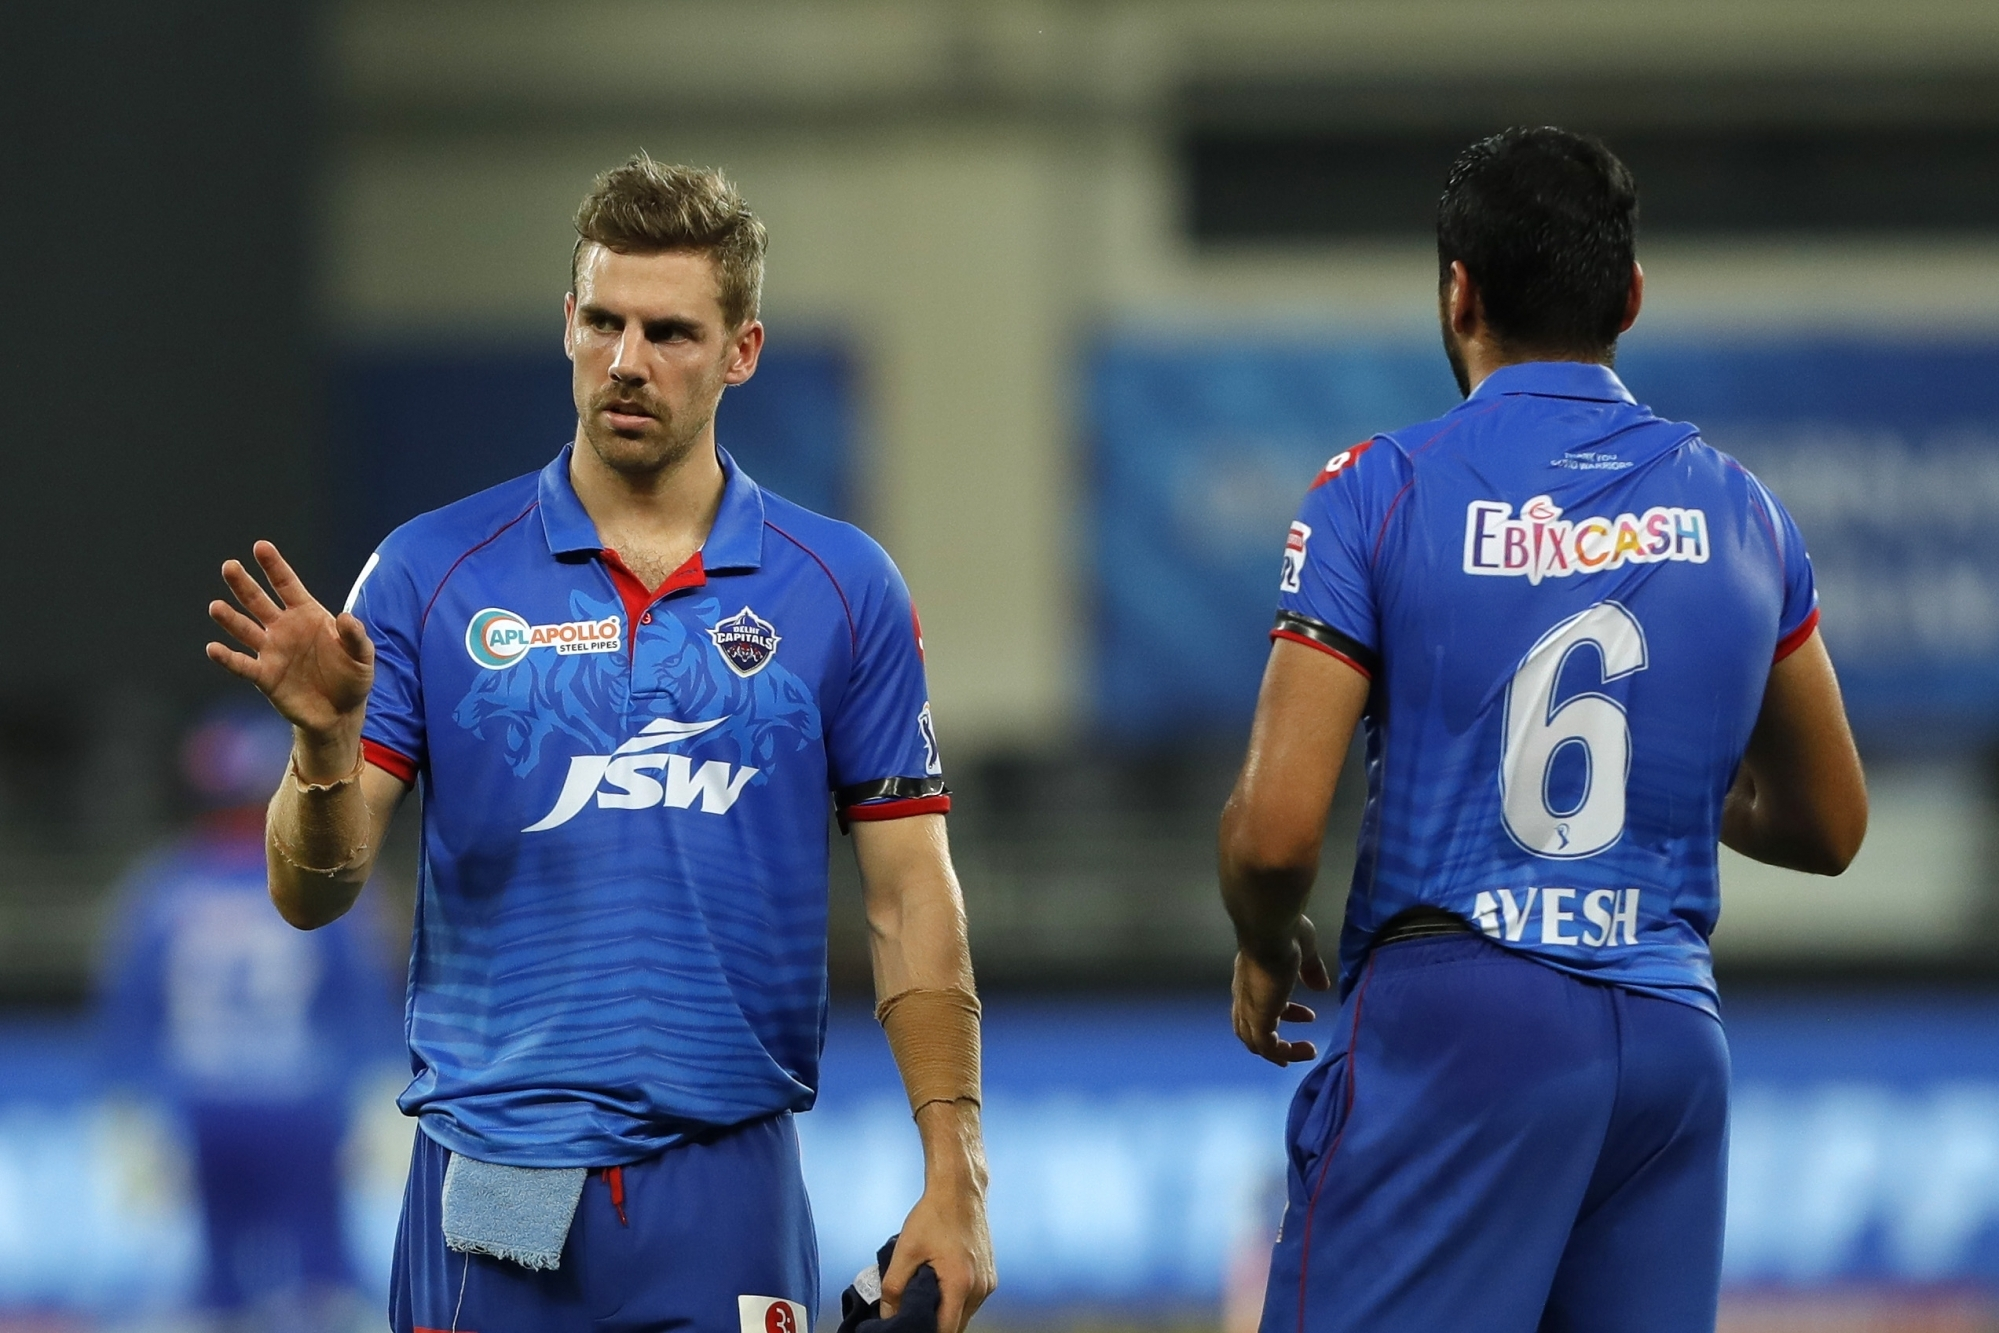 Delhi Capitals' Anrich Nortje took 22 wickets in IPL 2020. (Photo - IANS)